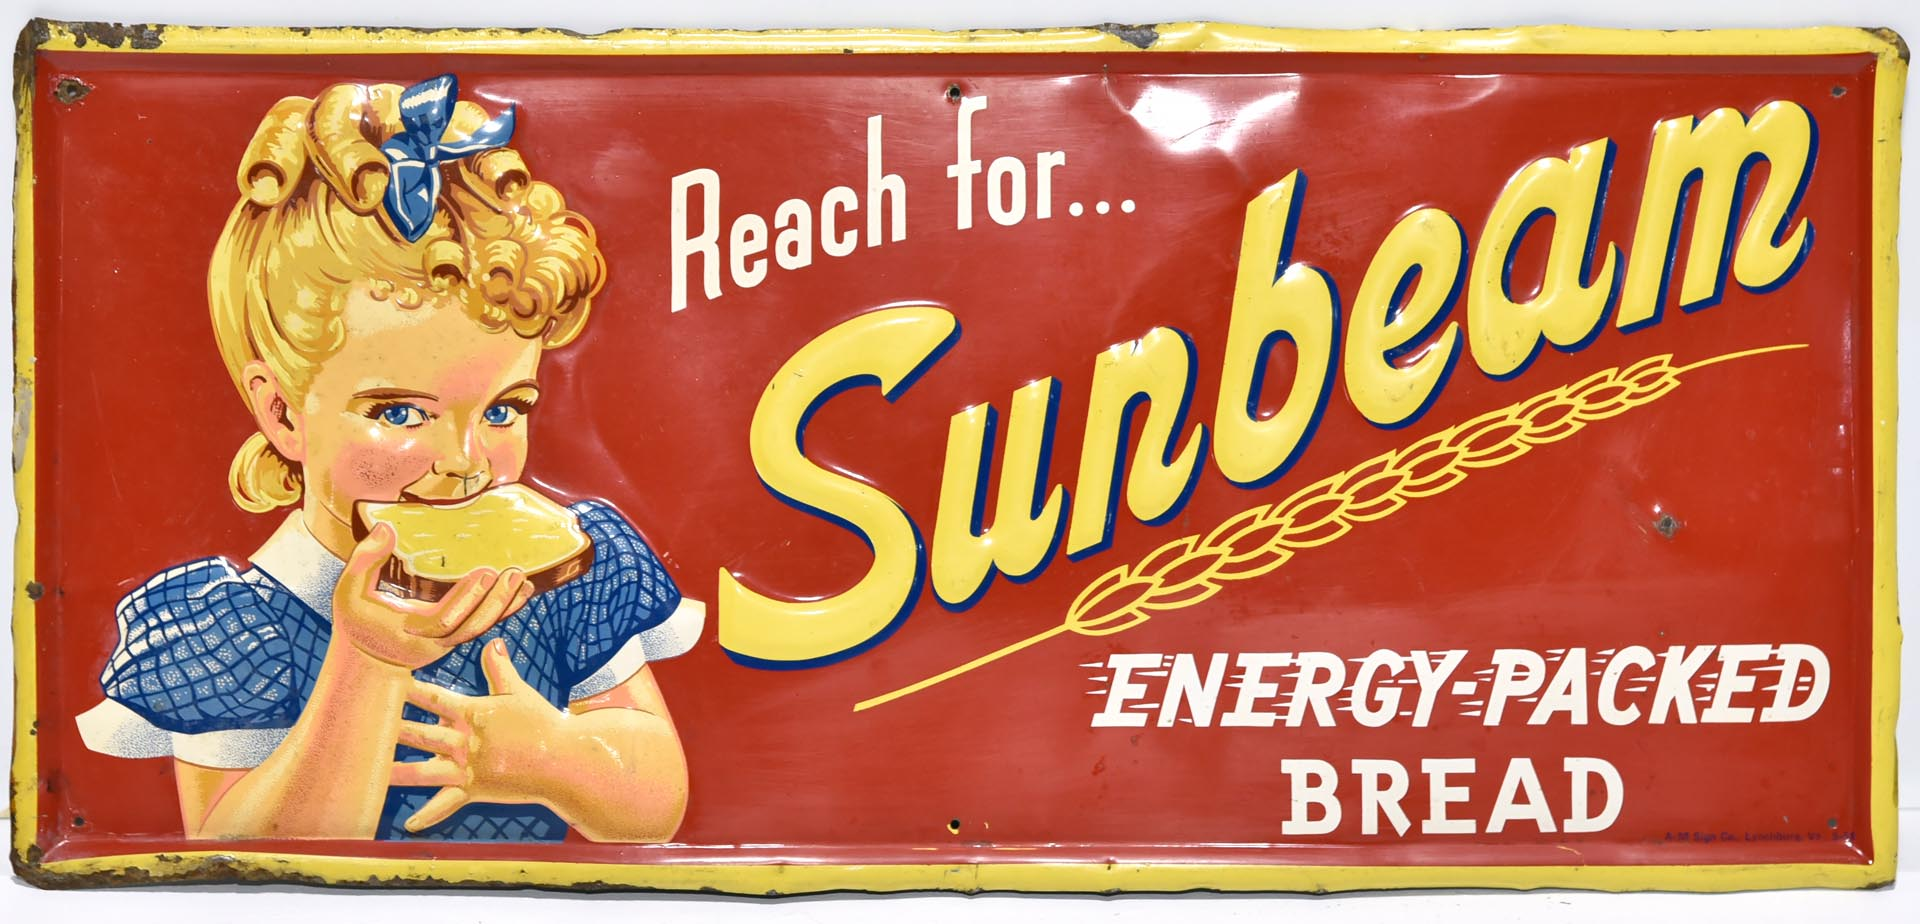 1954 Reach For Sunbeam Energy Packed Bread Embossed Tin Sign